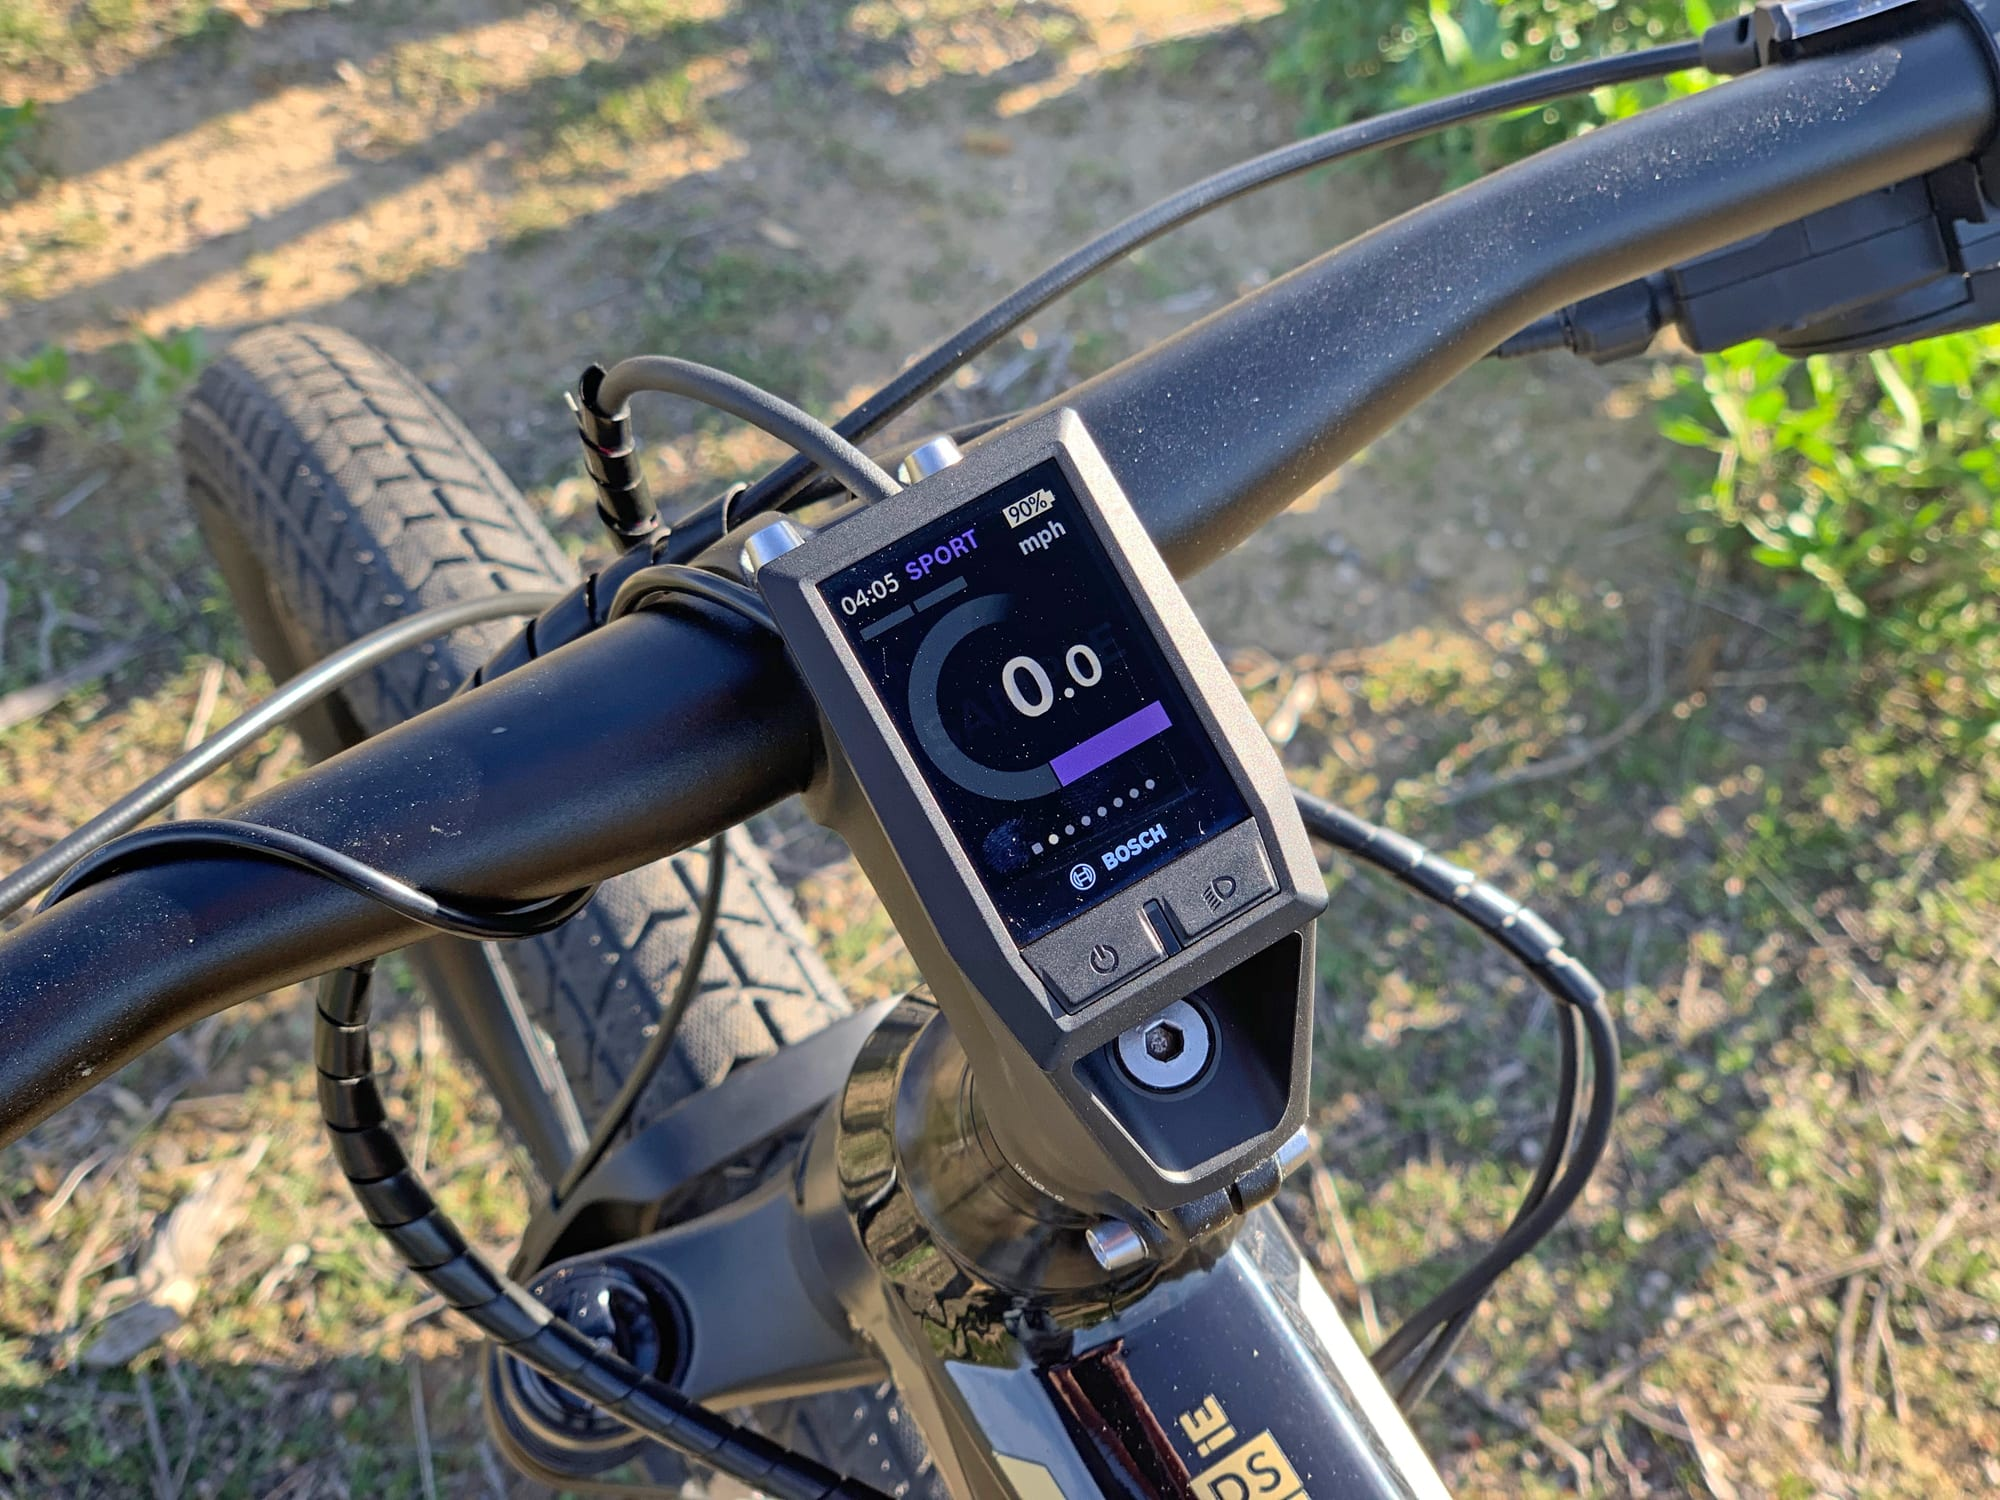 108f5102c0b Raleigh Lore DS iE Review - Prices, Specs, Videos, Photos